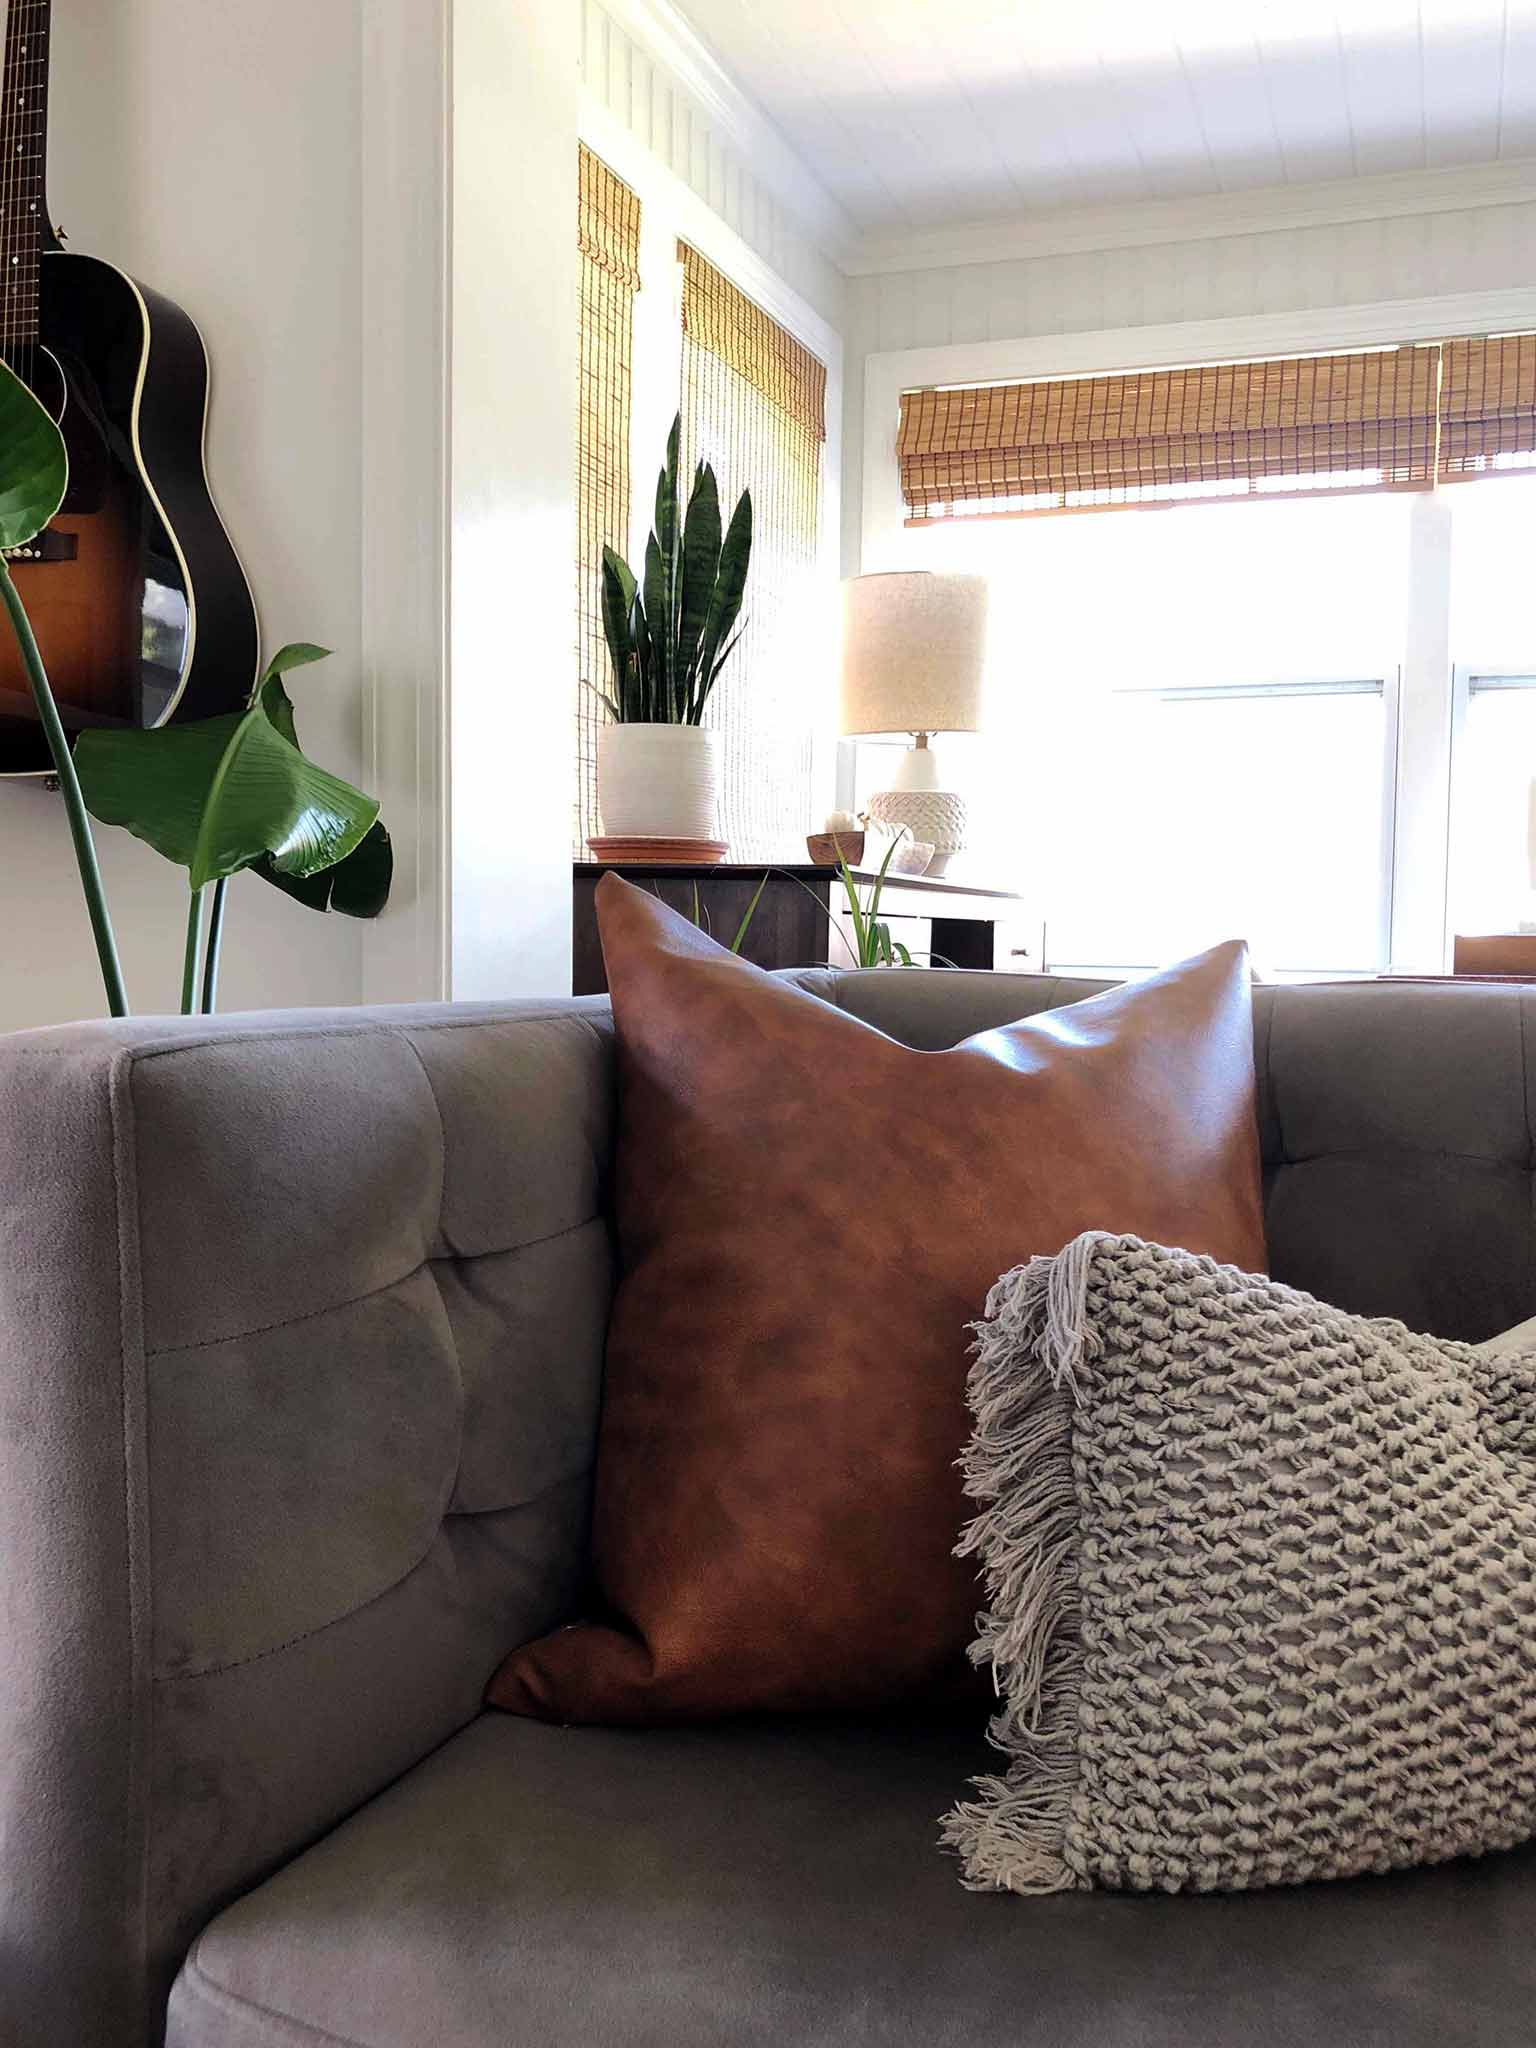 Decorating with pillows - Simple Fall Decor for the Uncluttered Home - That Homebird Life blog